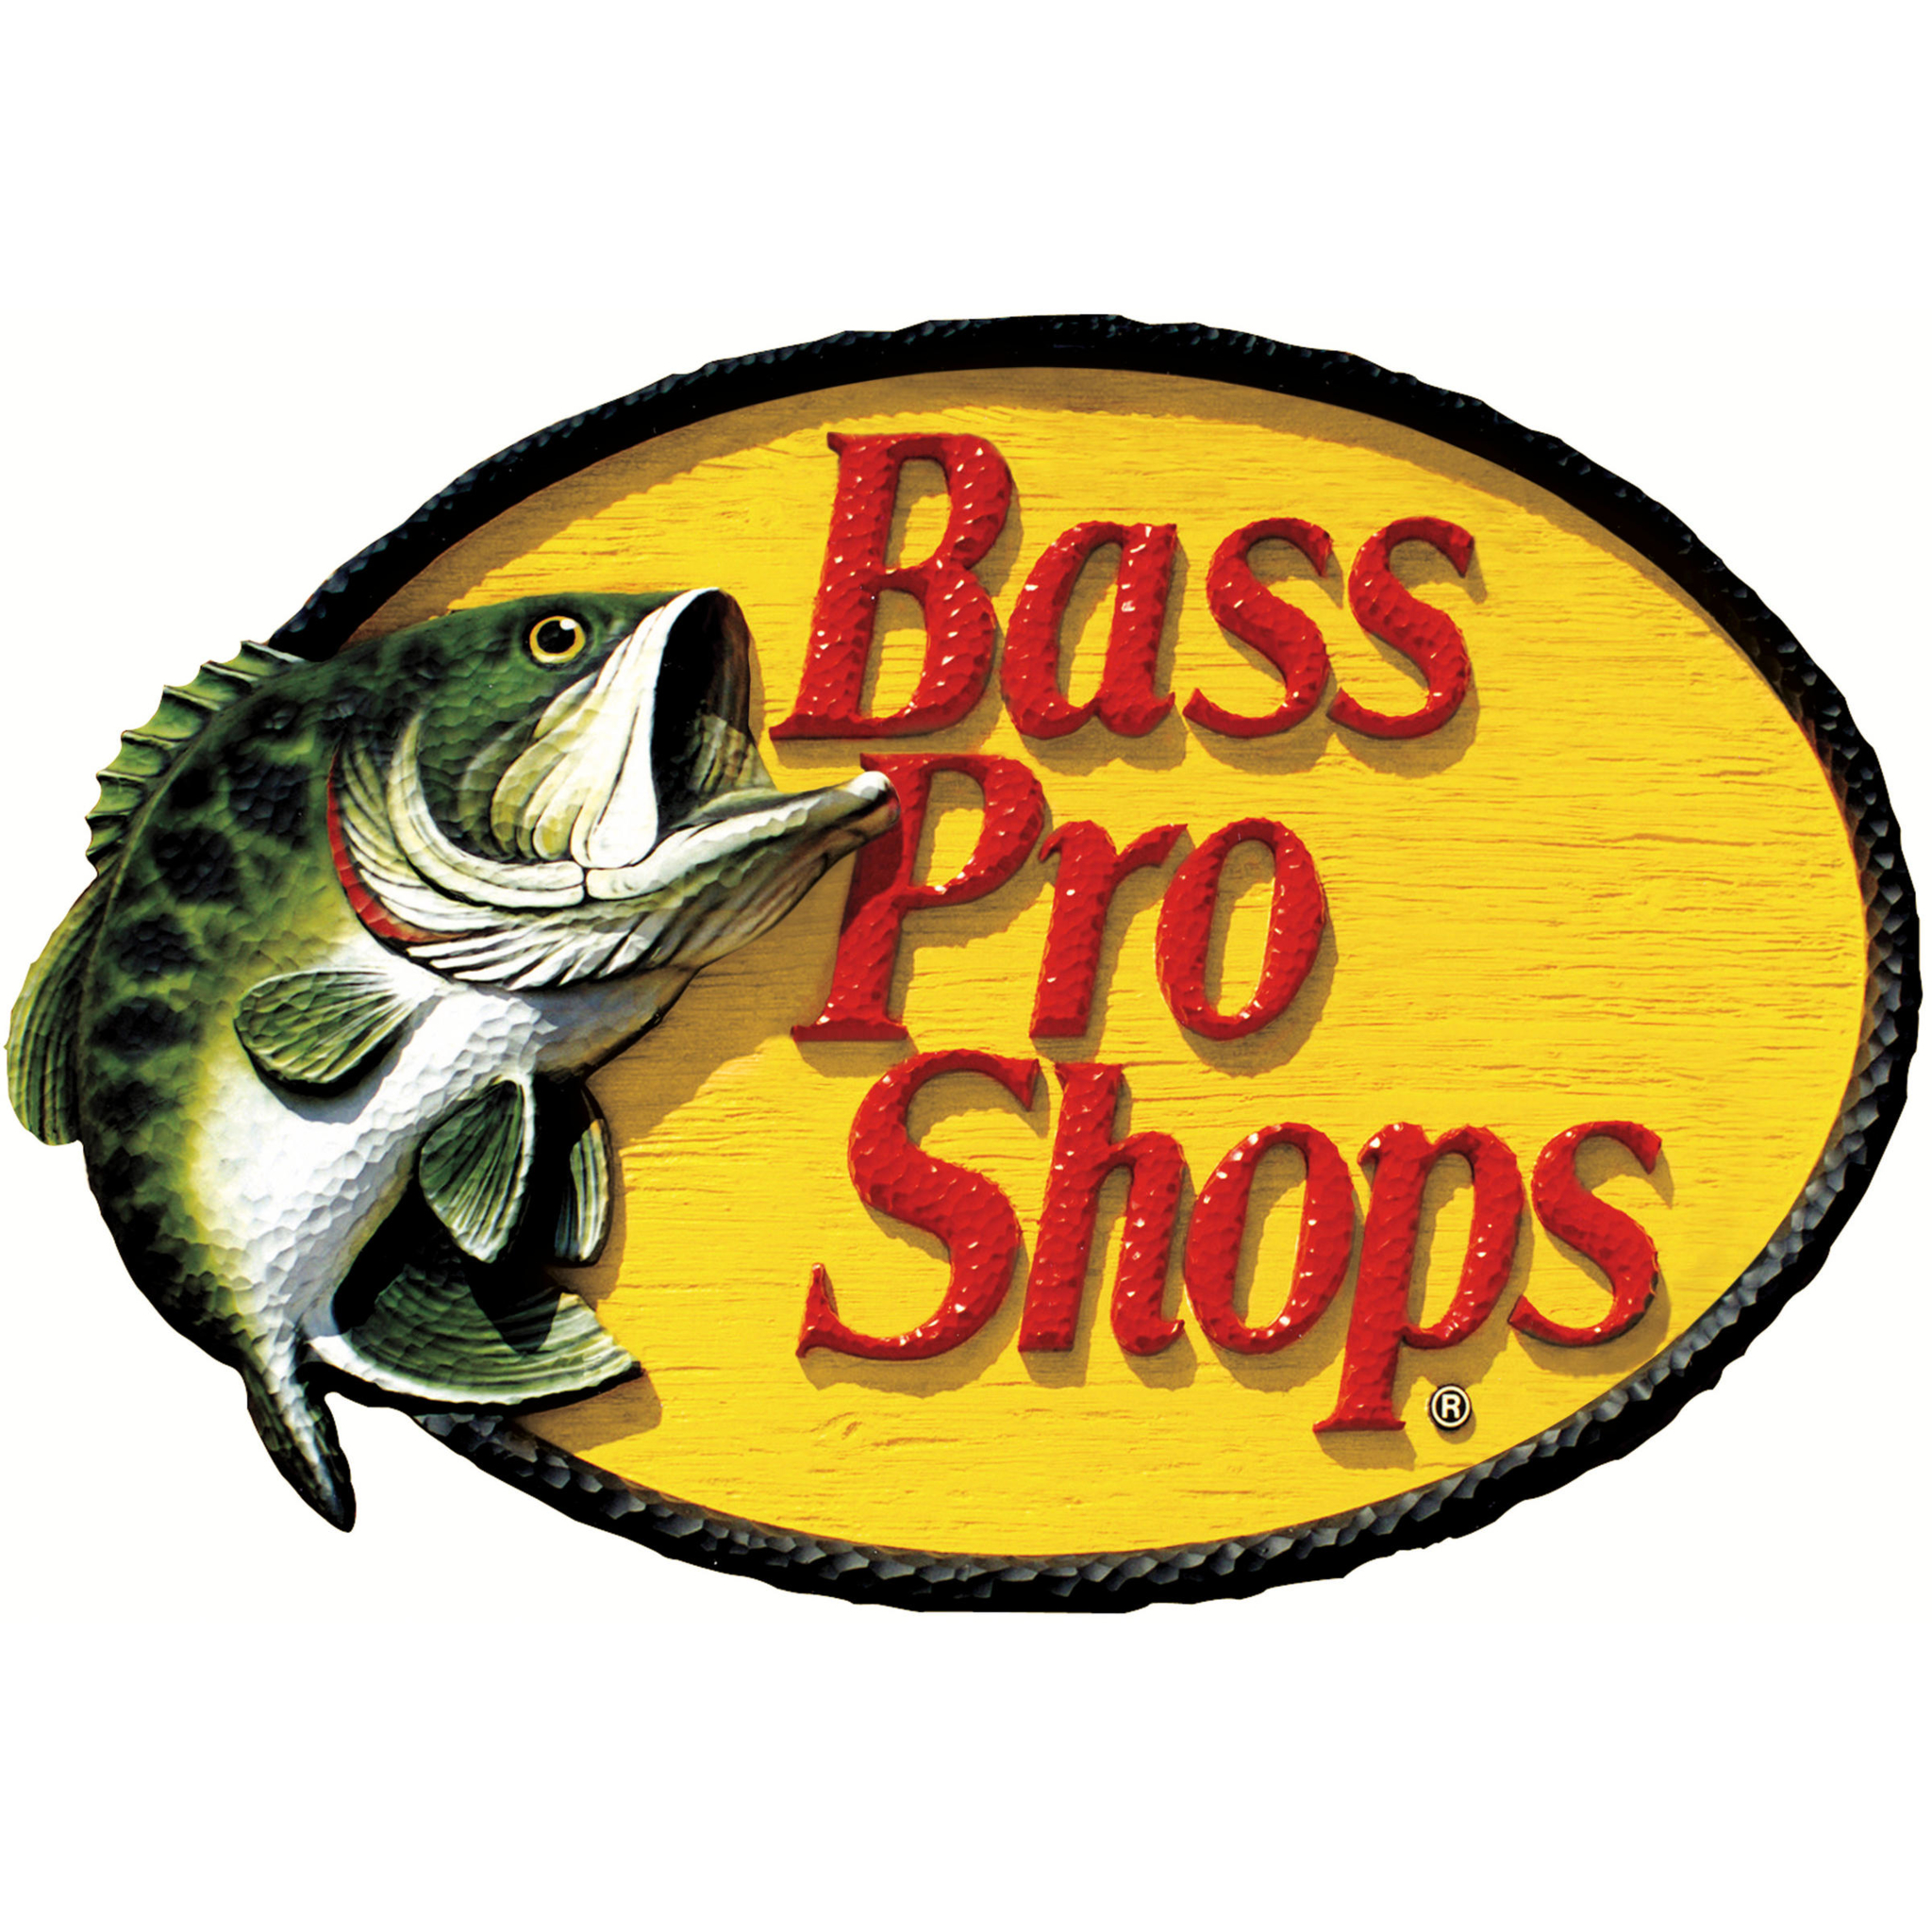 Bass Pro Shops - Sporting Goods Stores